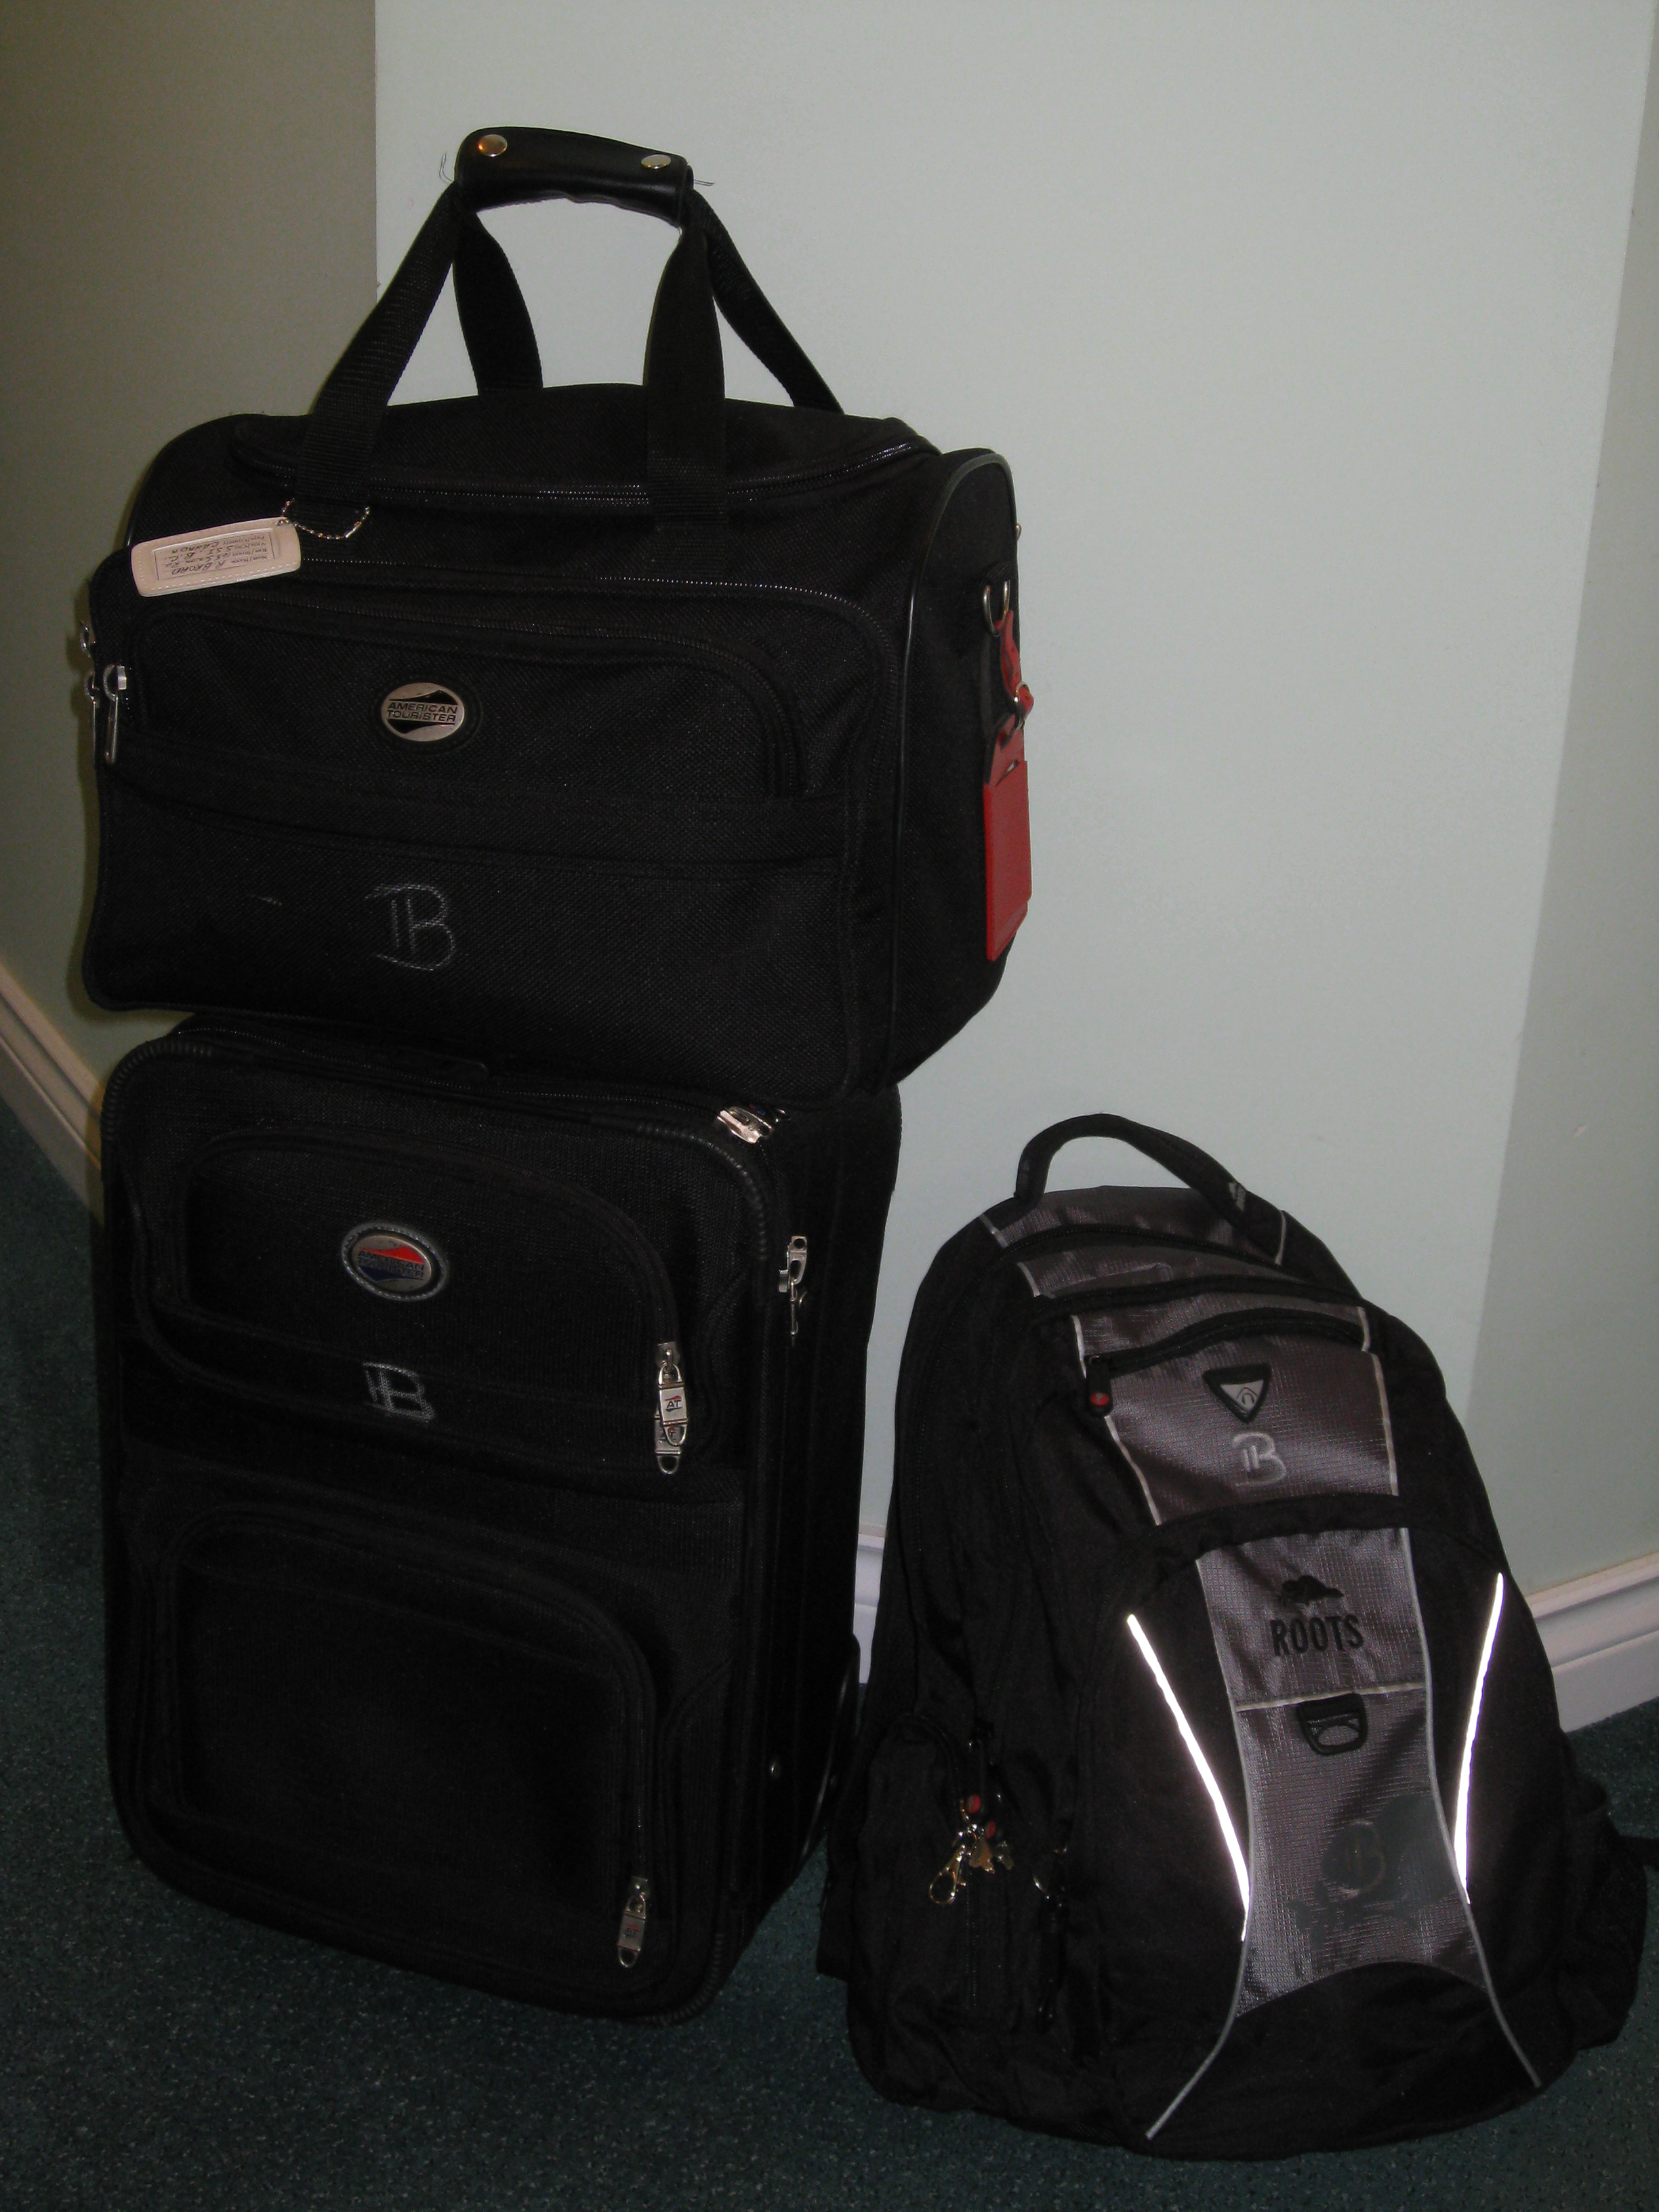 Suitcase, Duffel, Backpack